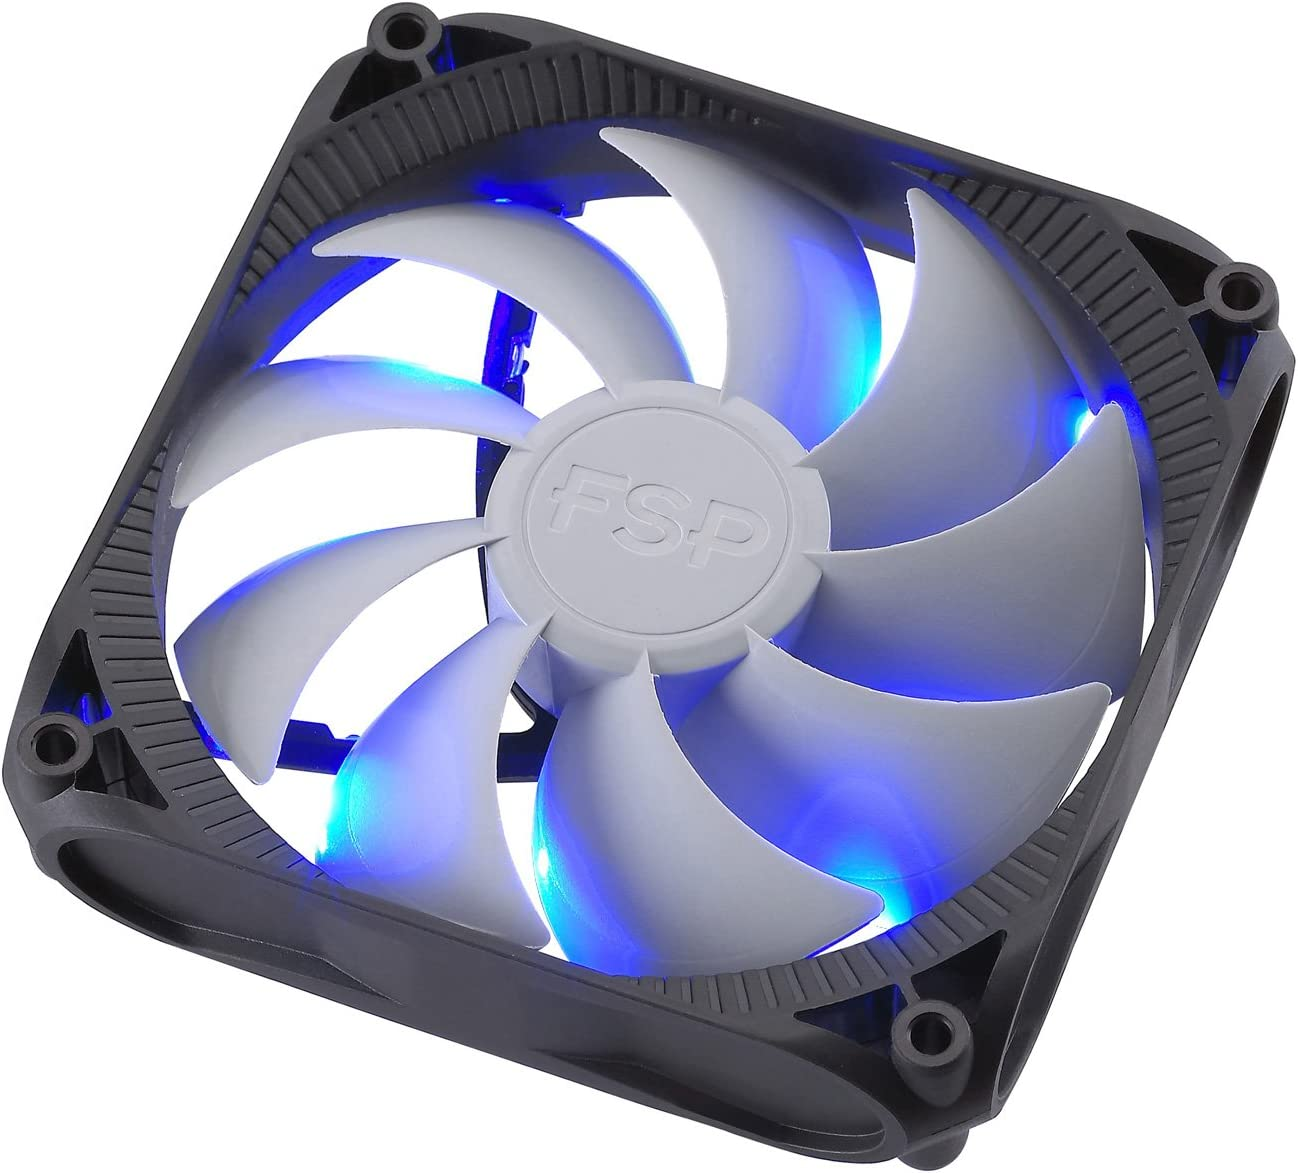 FSP 120mm Quiet Sleeve Bearing Case Fan Blue LED for Computer Cases (CF12S11)